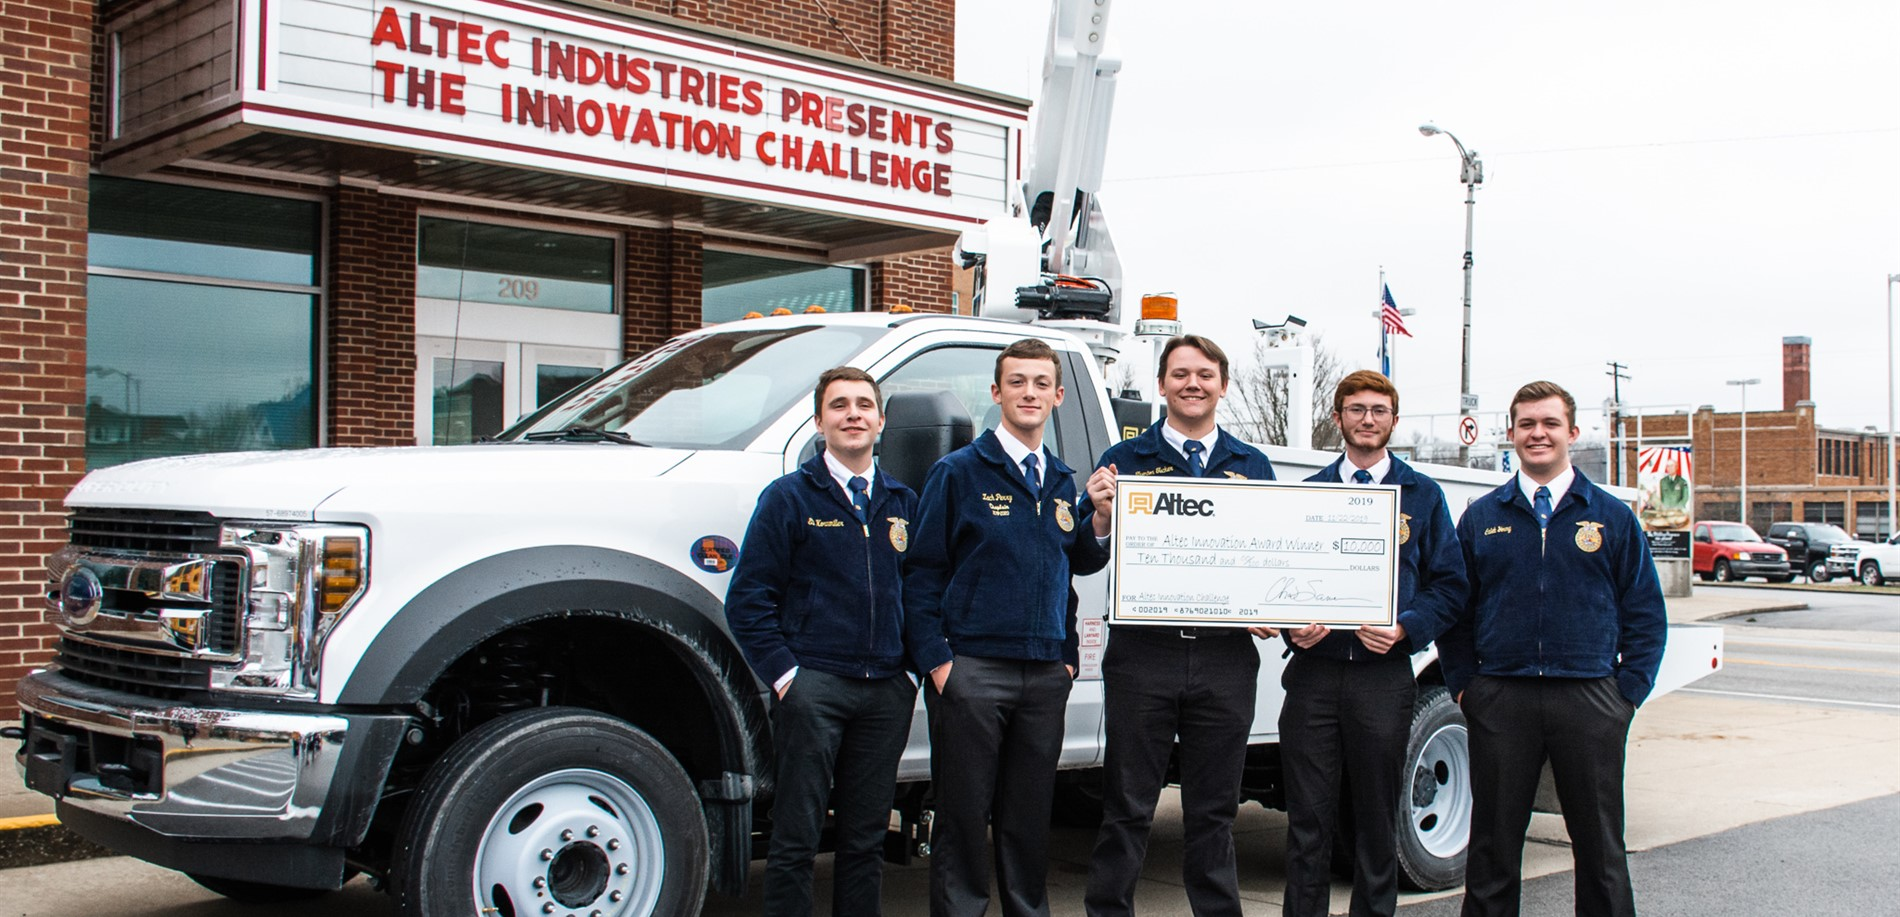 The Central Hardin FFA program earned first place in the Altec Innovation Challenge.